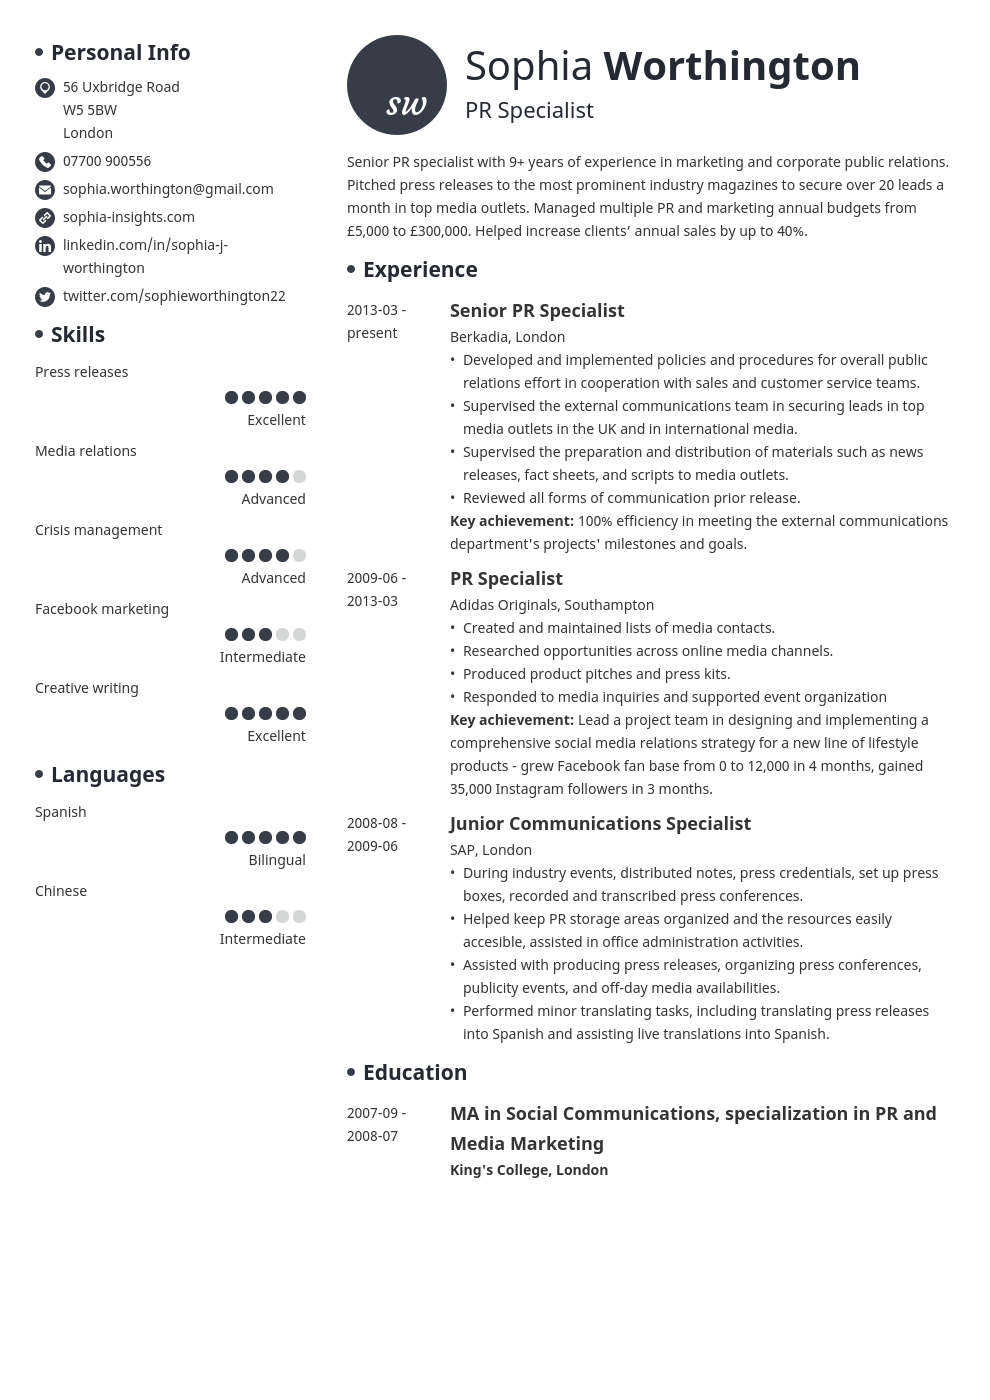 Functional Cv Template from cdn-images.zety.com